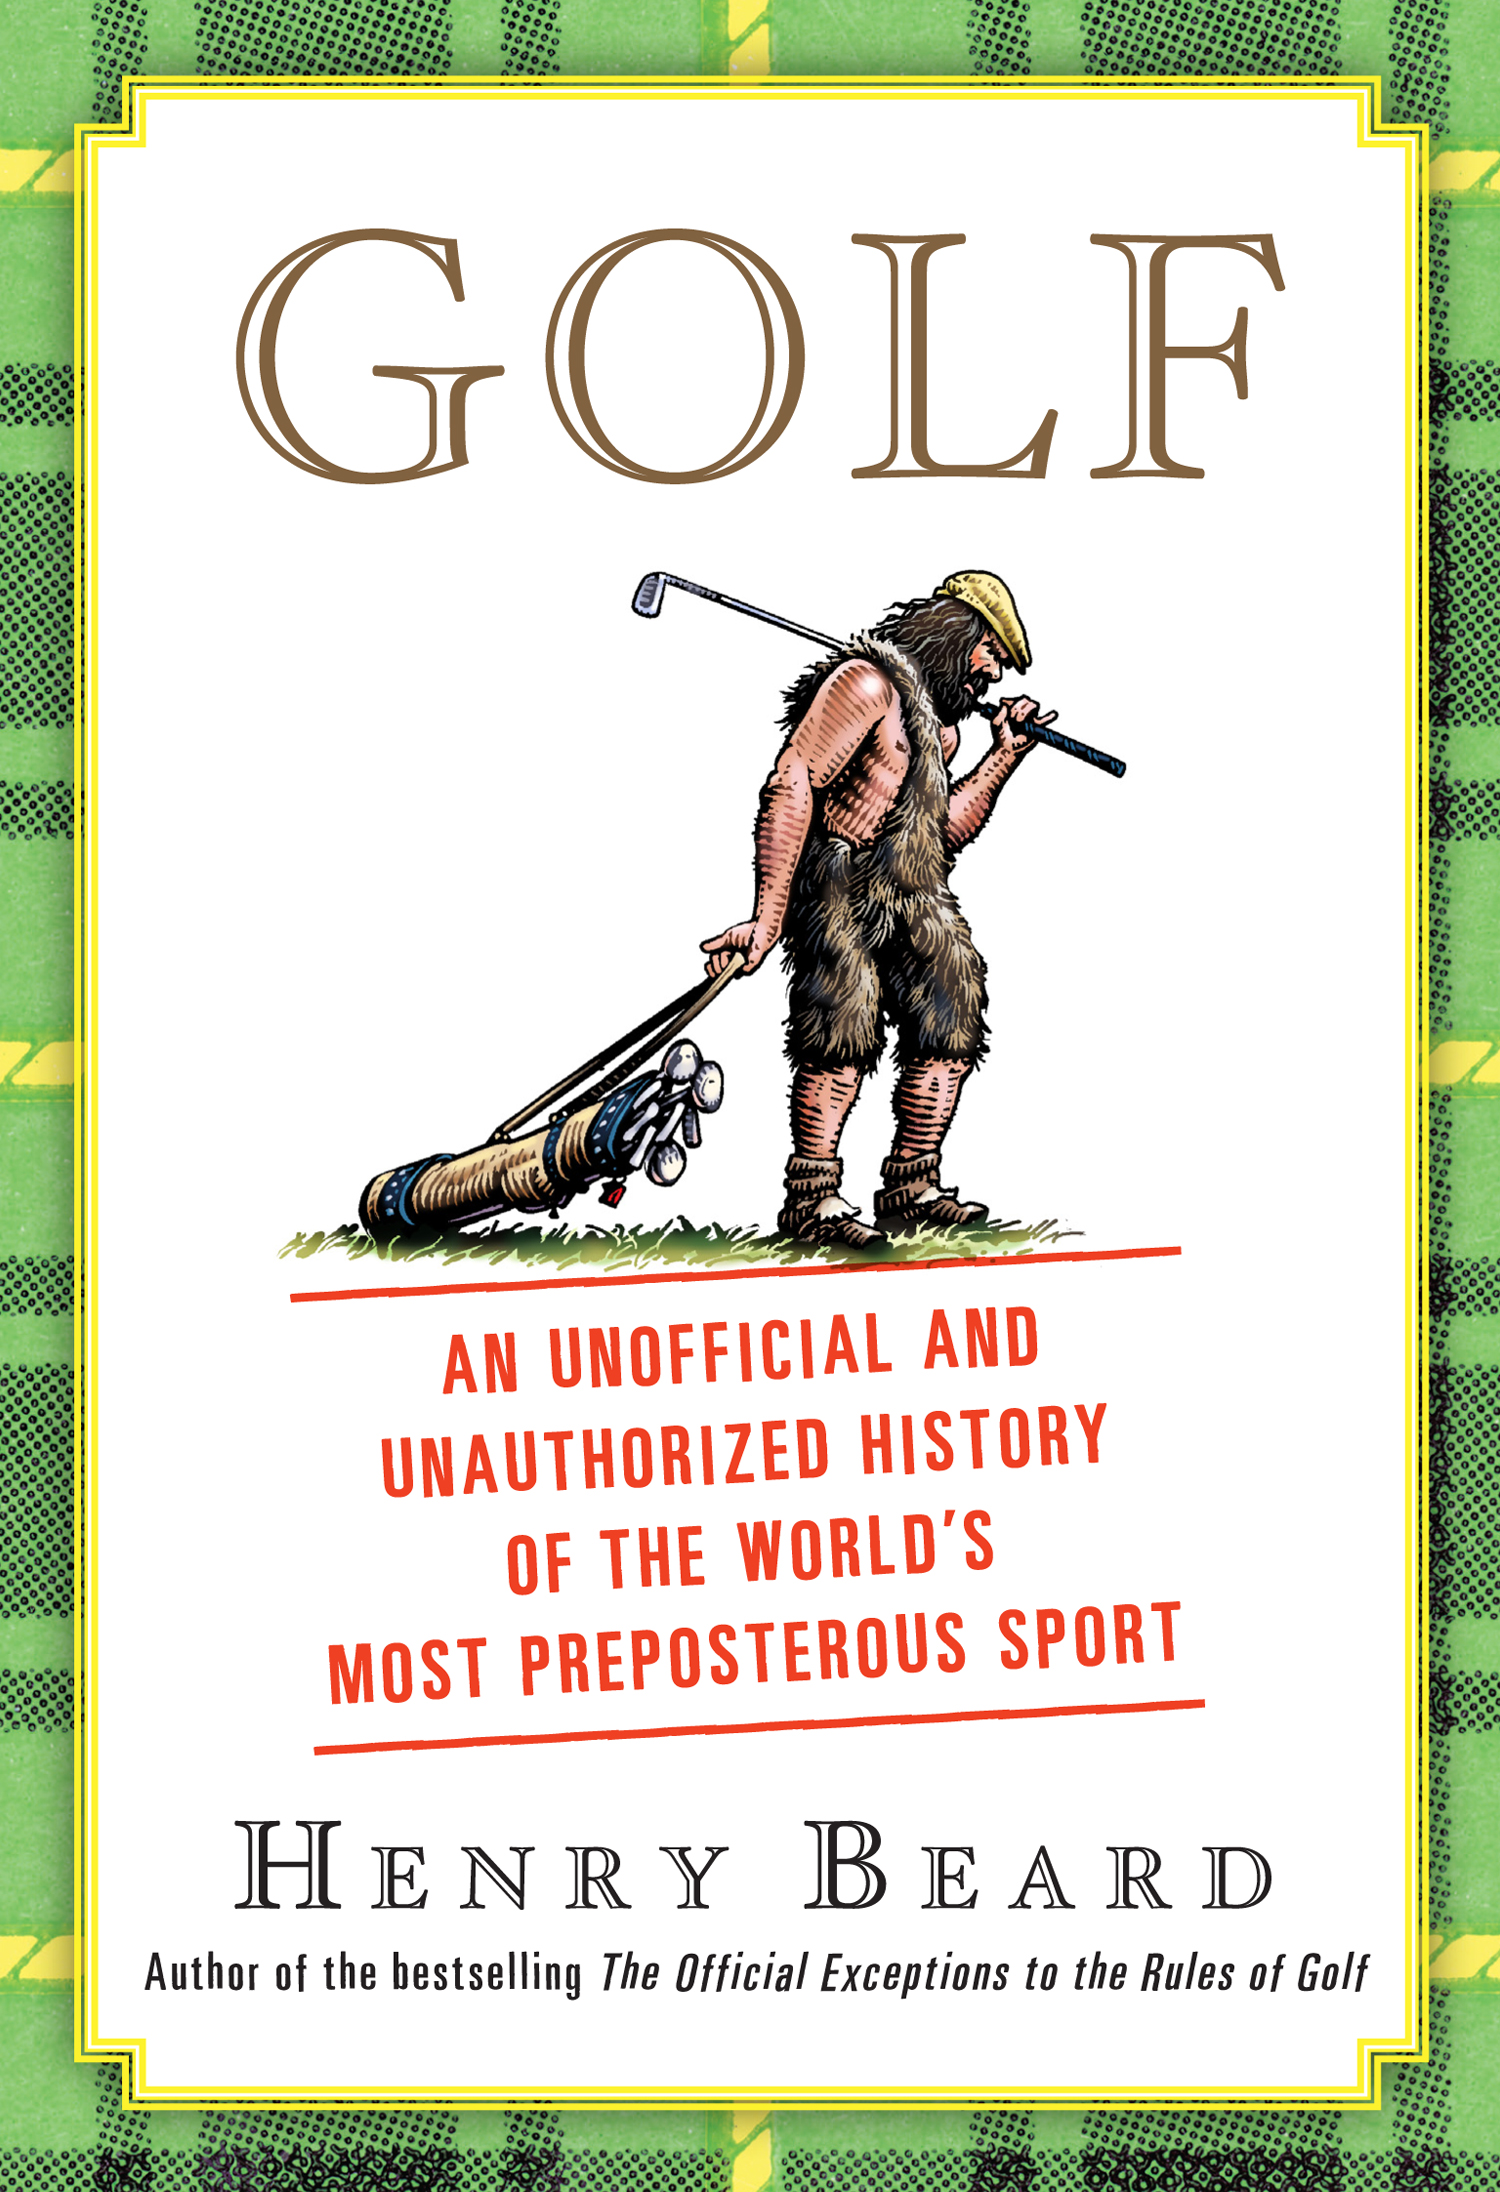 GOLF-AN-UNAUTHORIZED-BIOGRAPHY-ss6.jpg